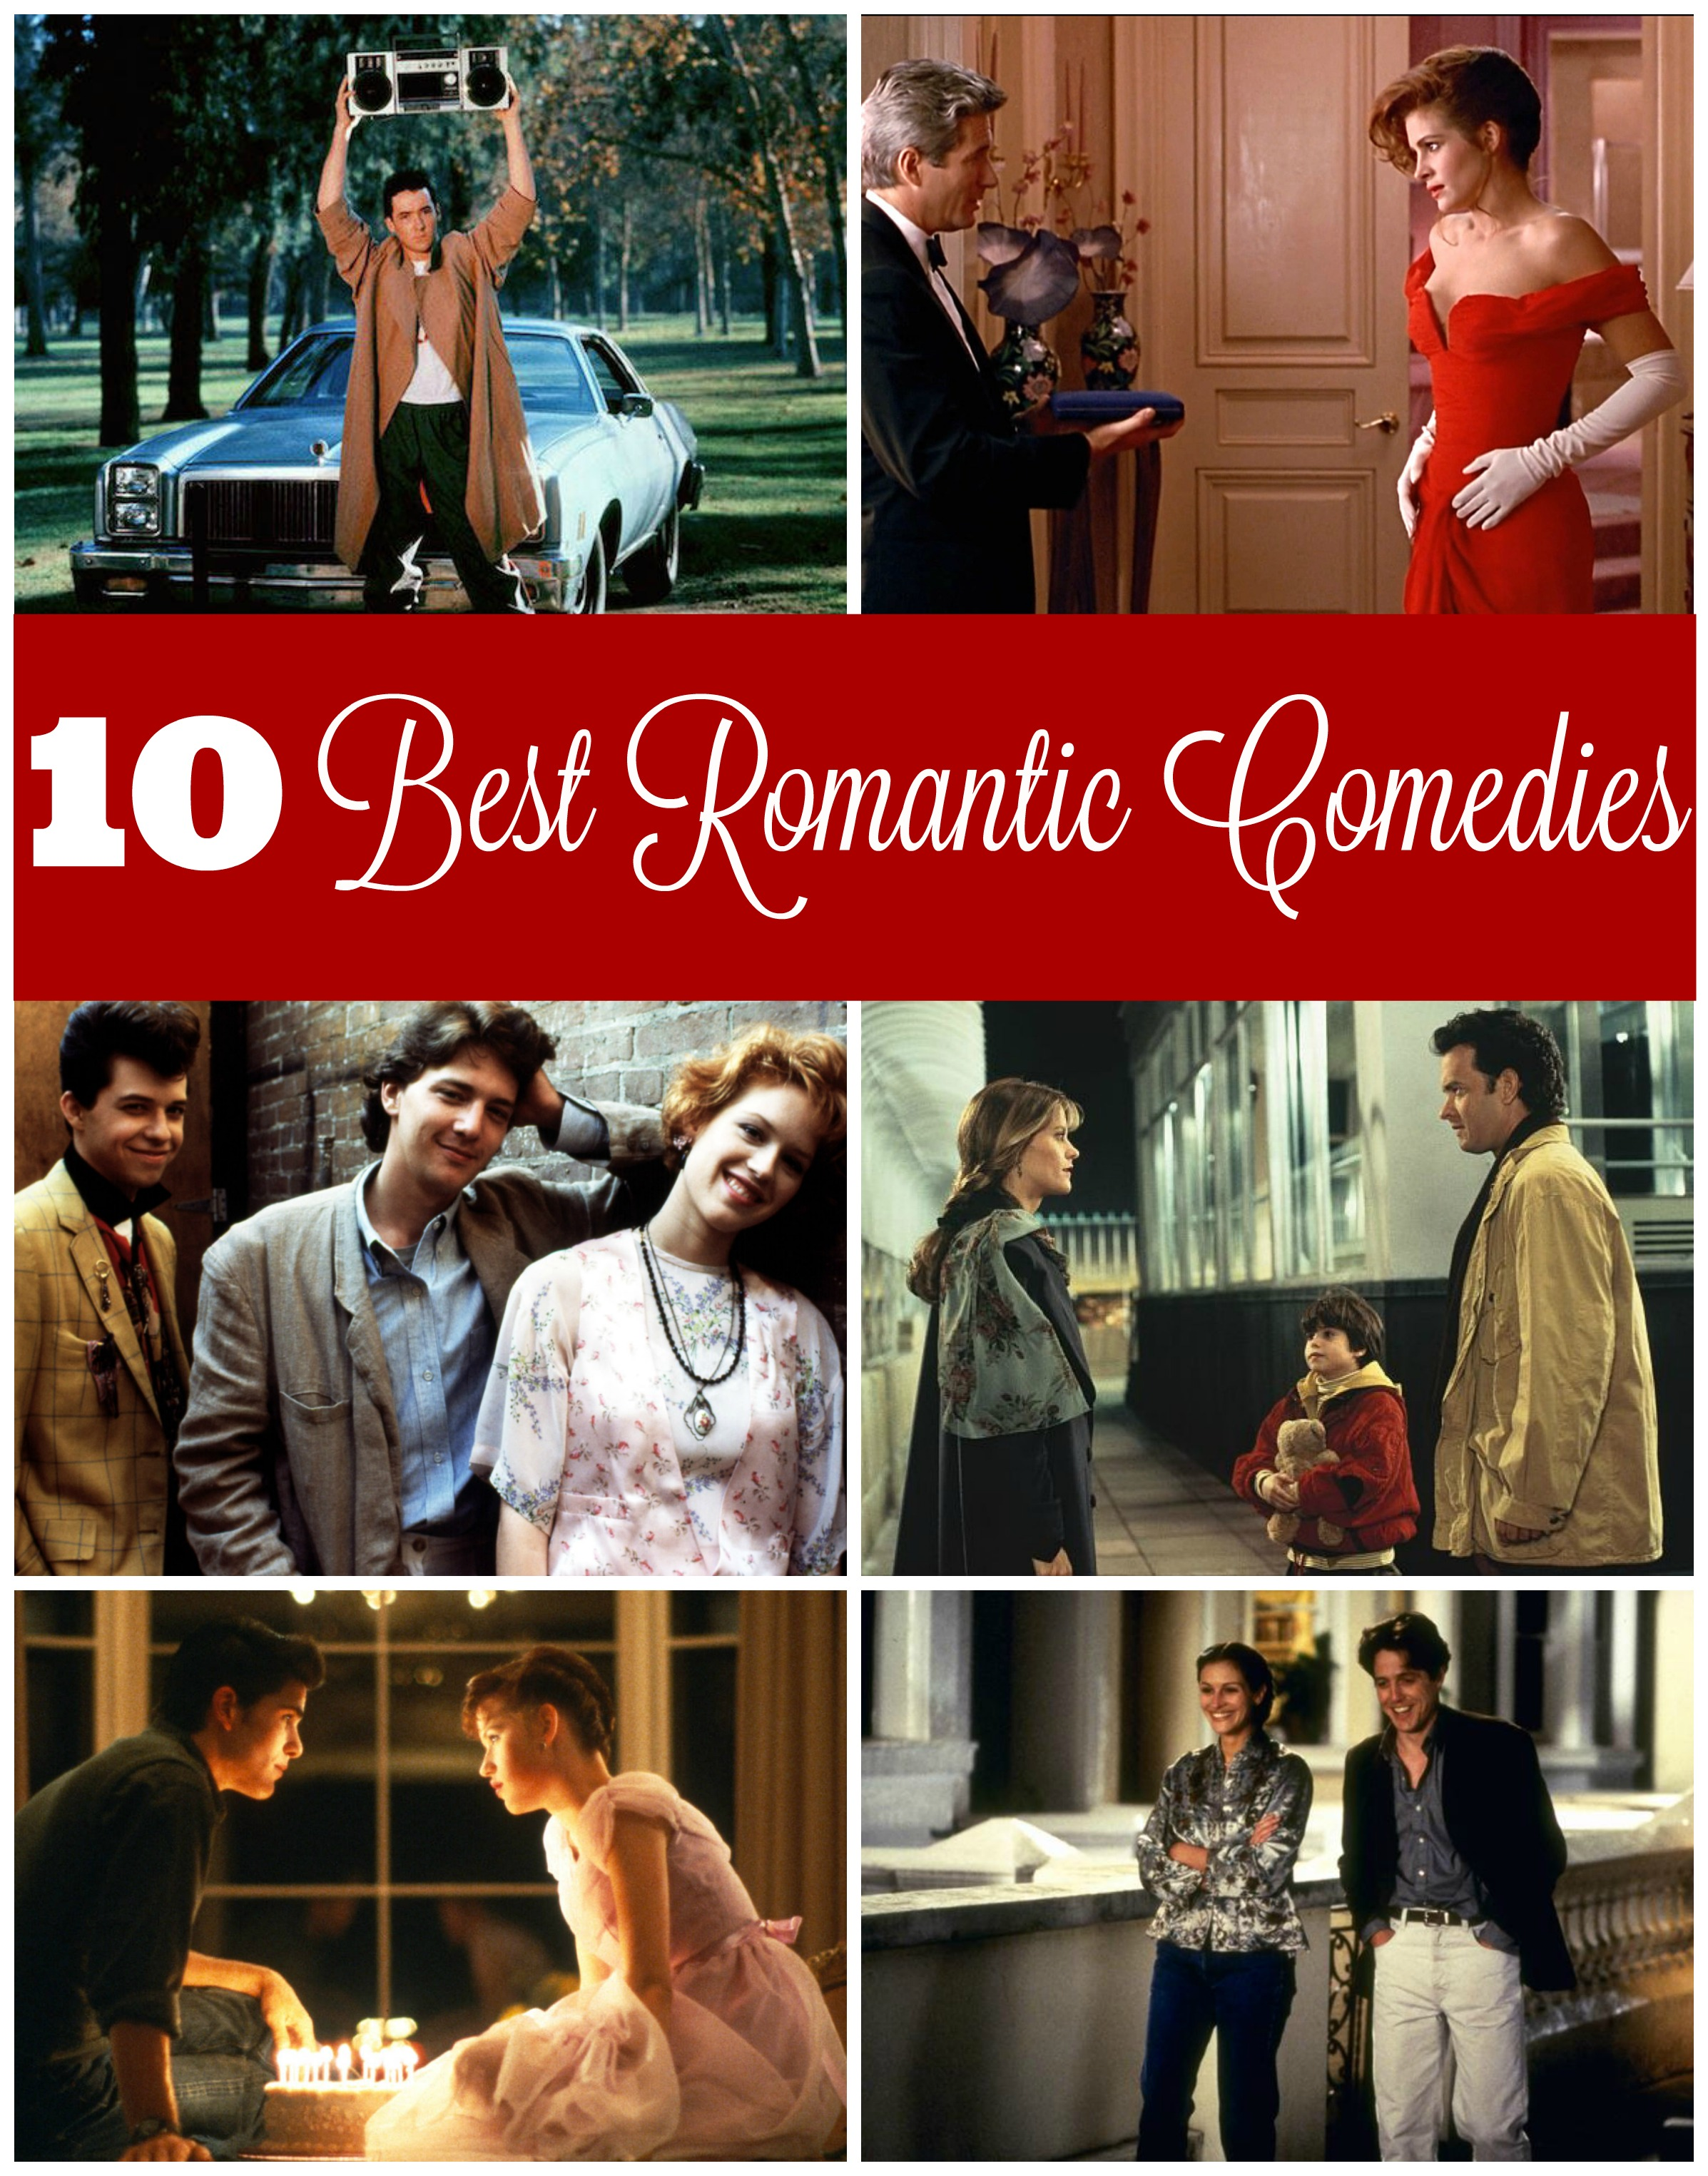 Top 10 Best Romantic Comedies for Valentines Day - R We